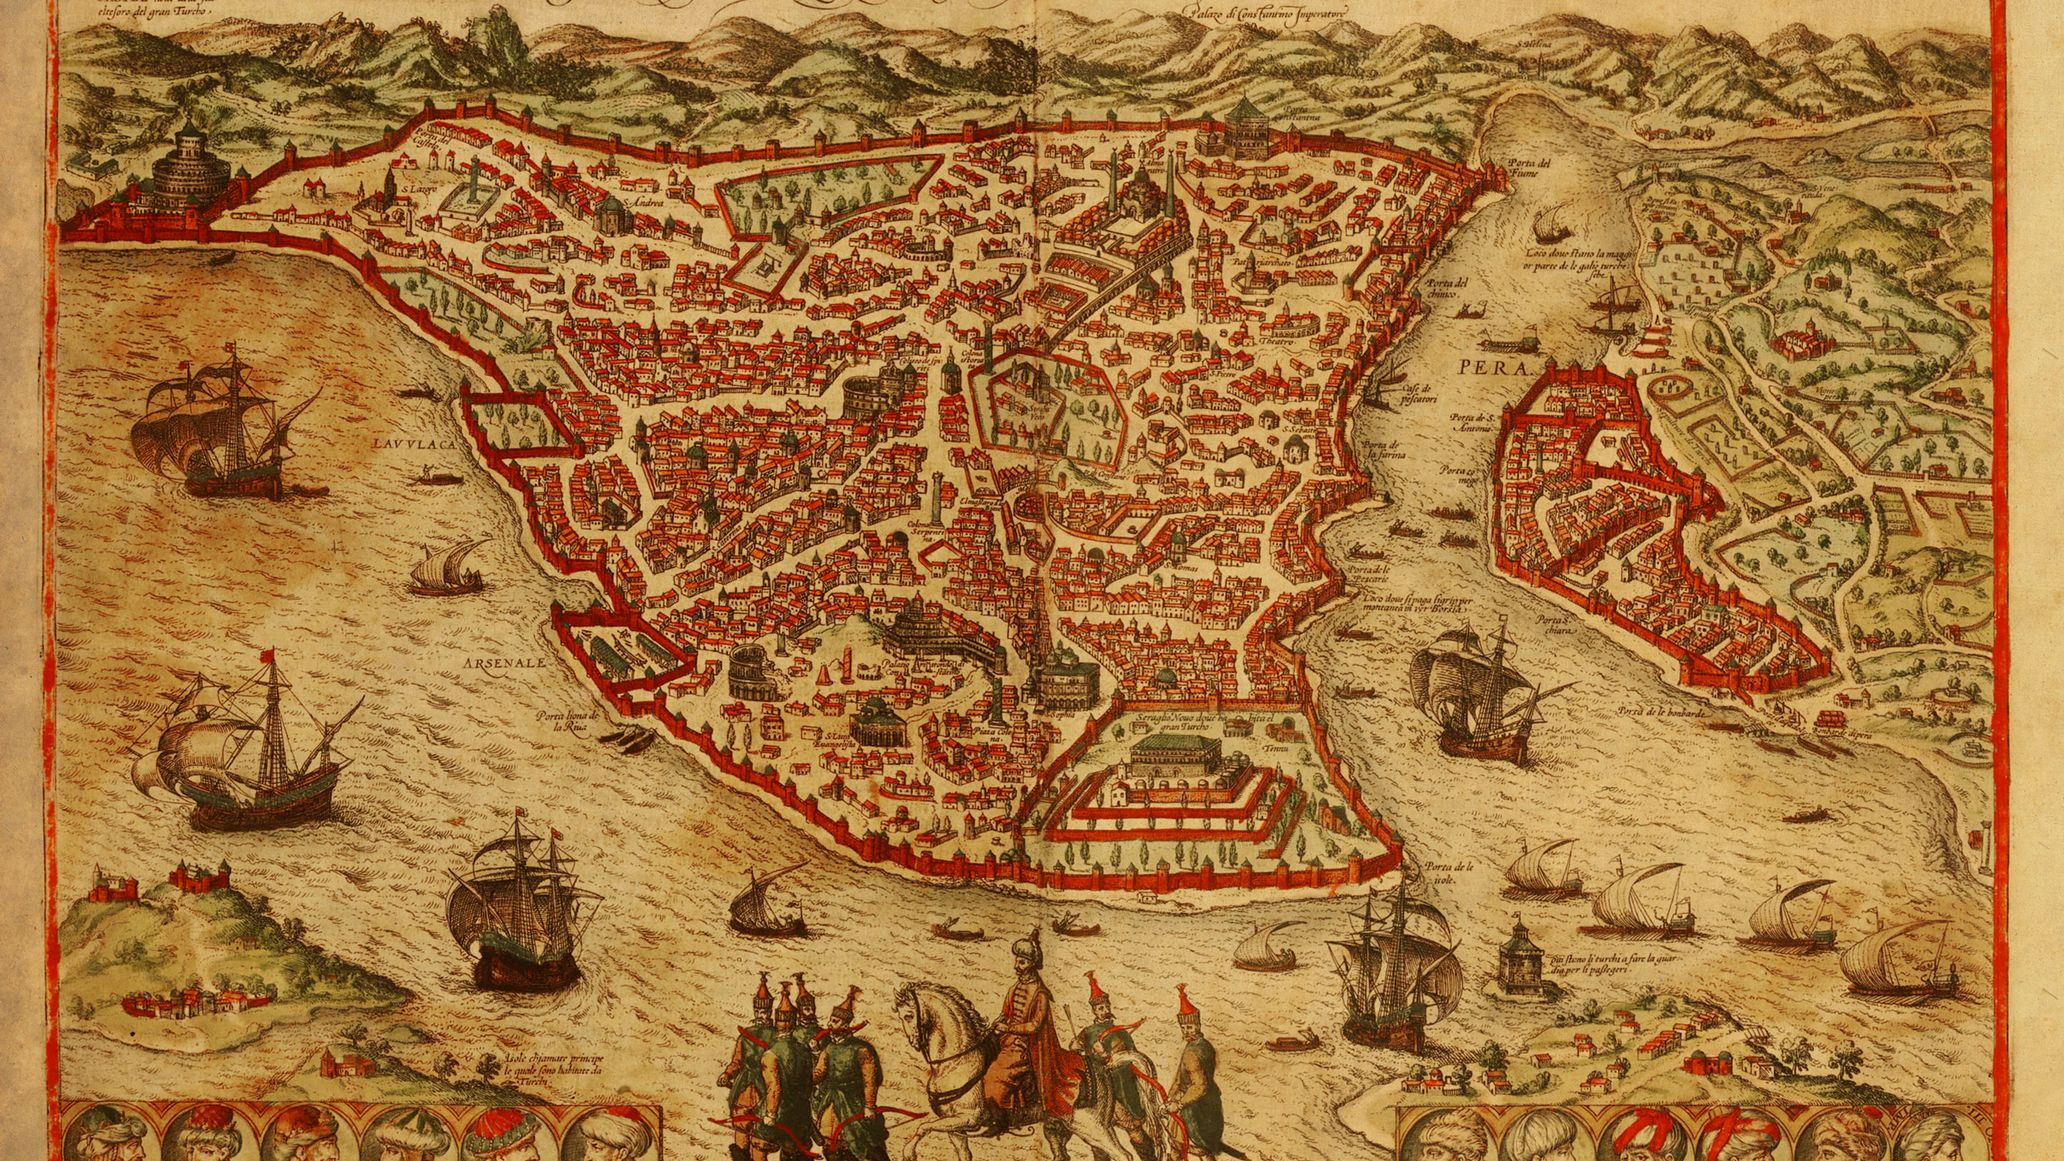 istanbul-old-map-170615962-59f9ccc99abed50010c1beee-1